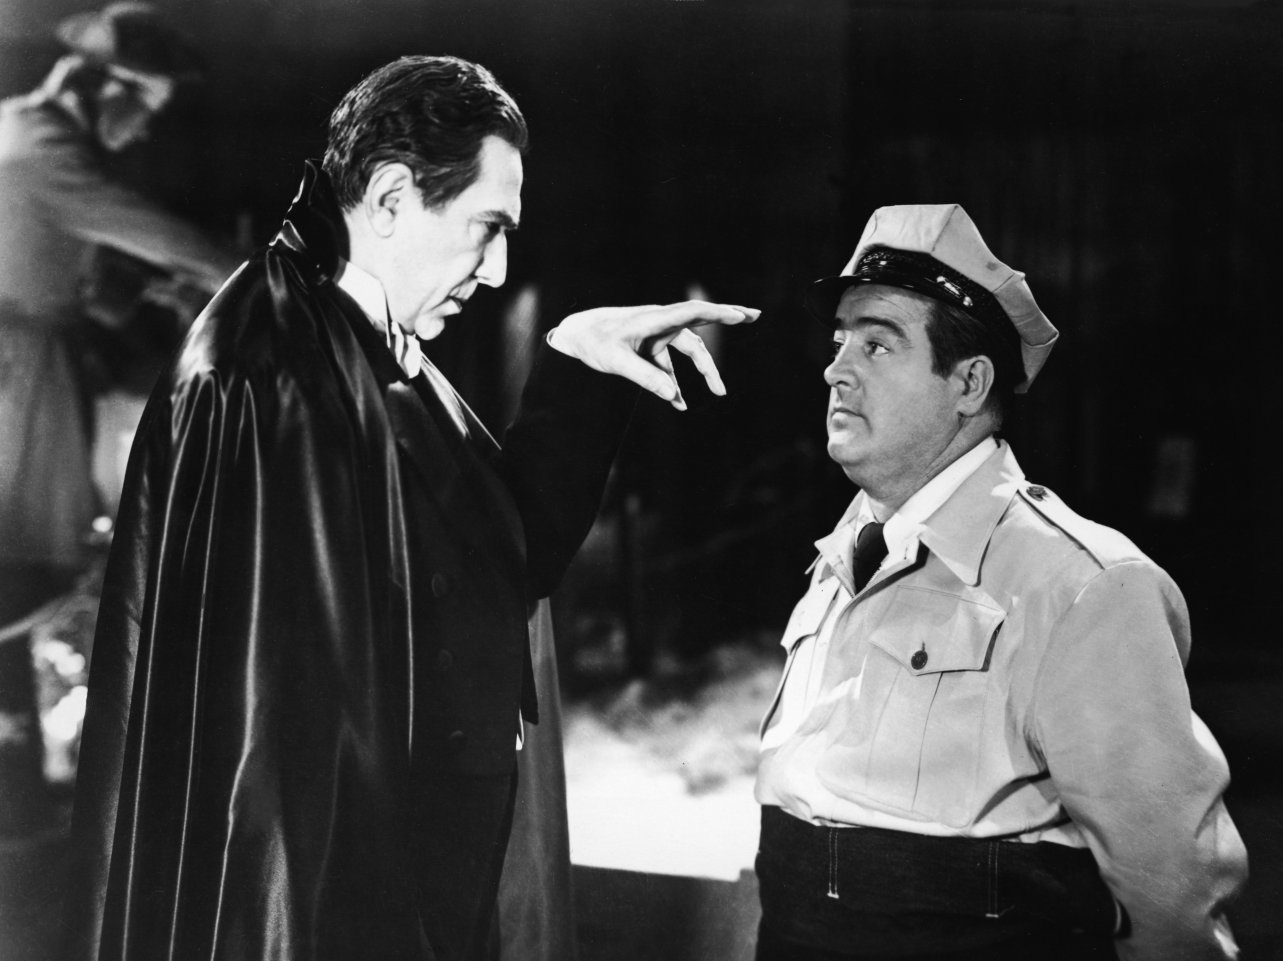 'Abbott & Costello Meet Frankenstein' Blu-ray Review: Near Perfect Marriage of Comedy and Horror